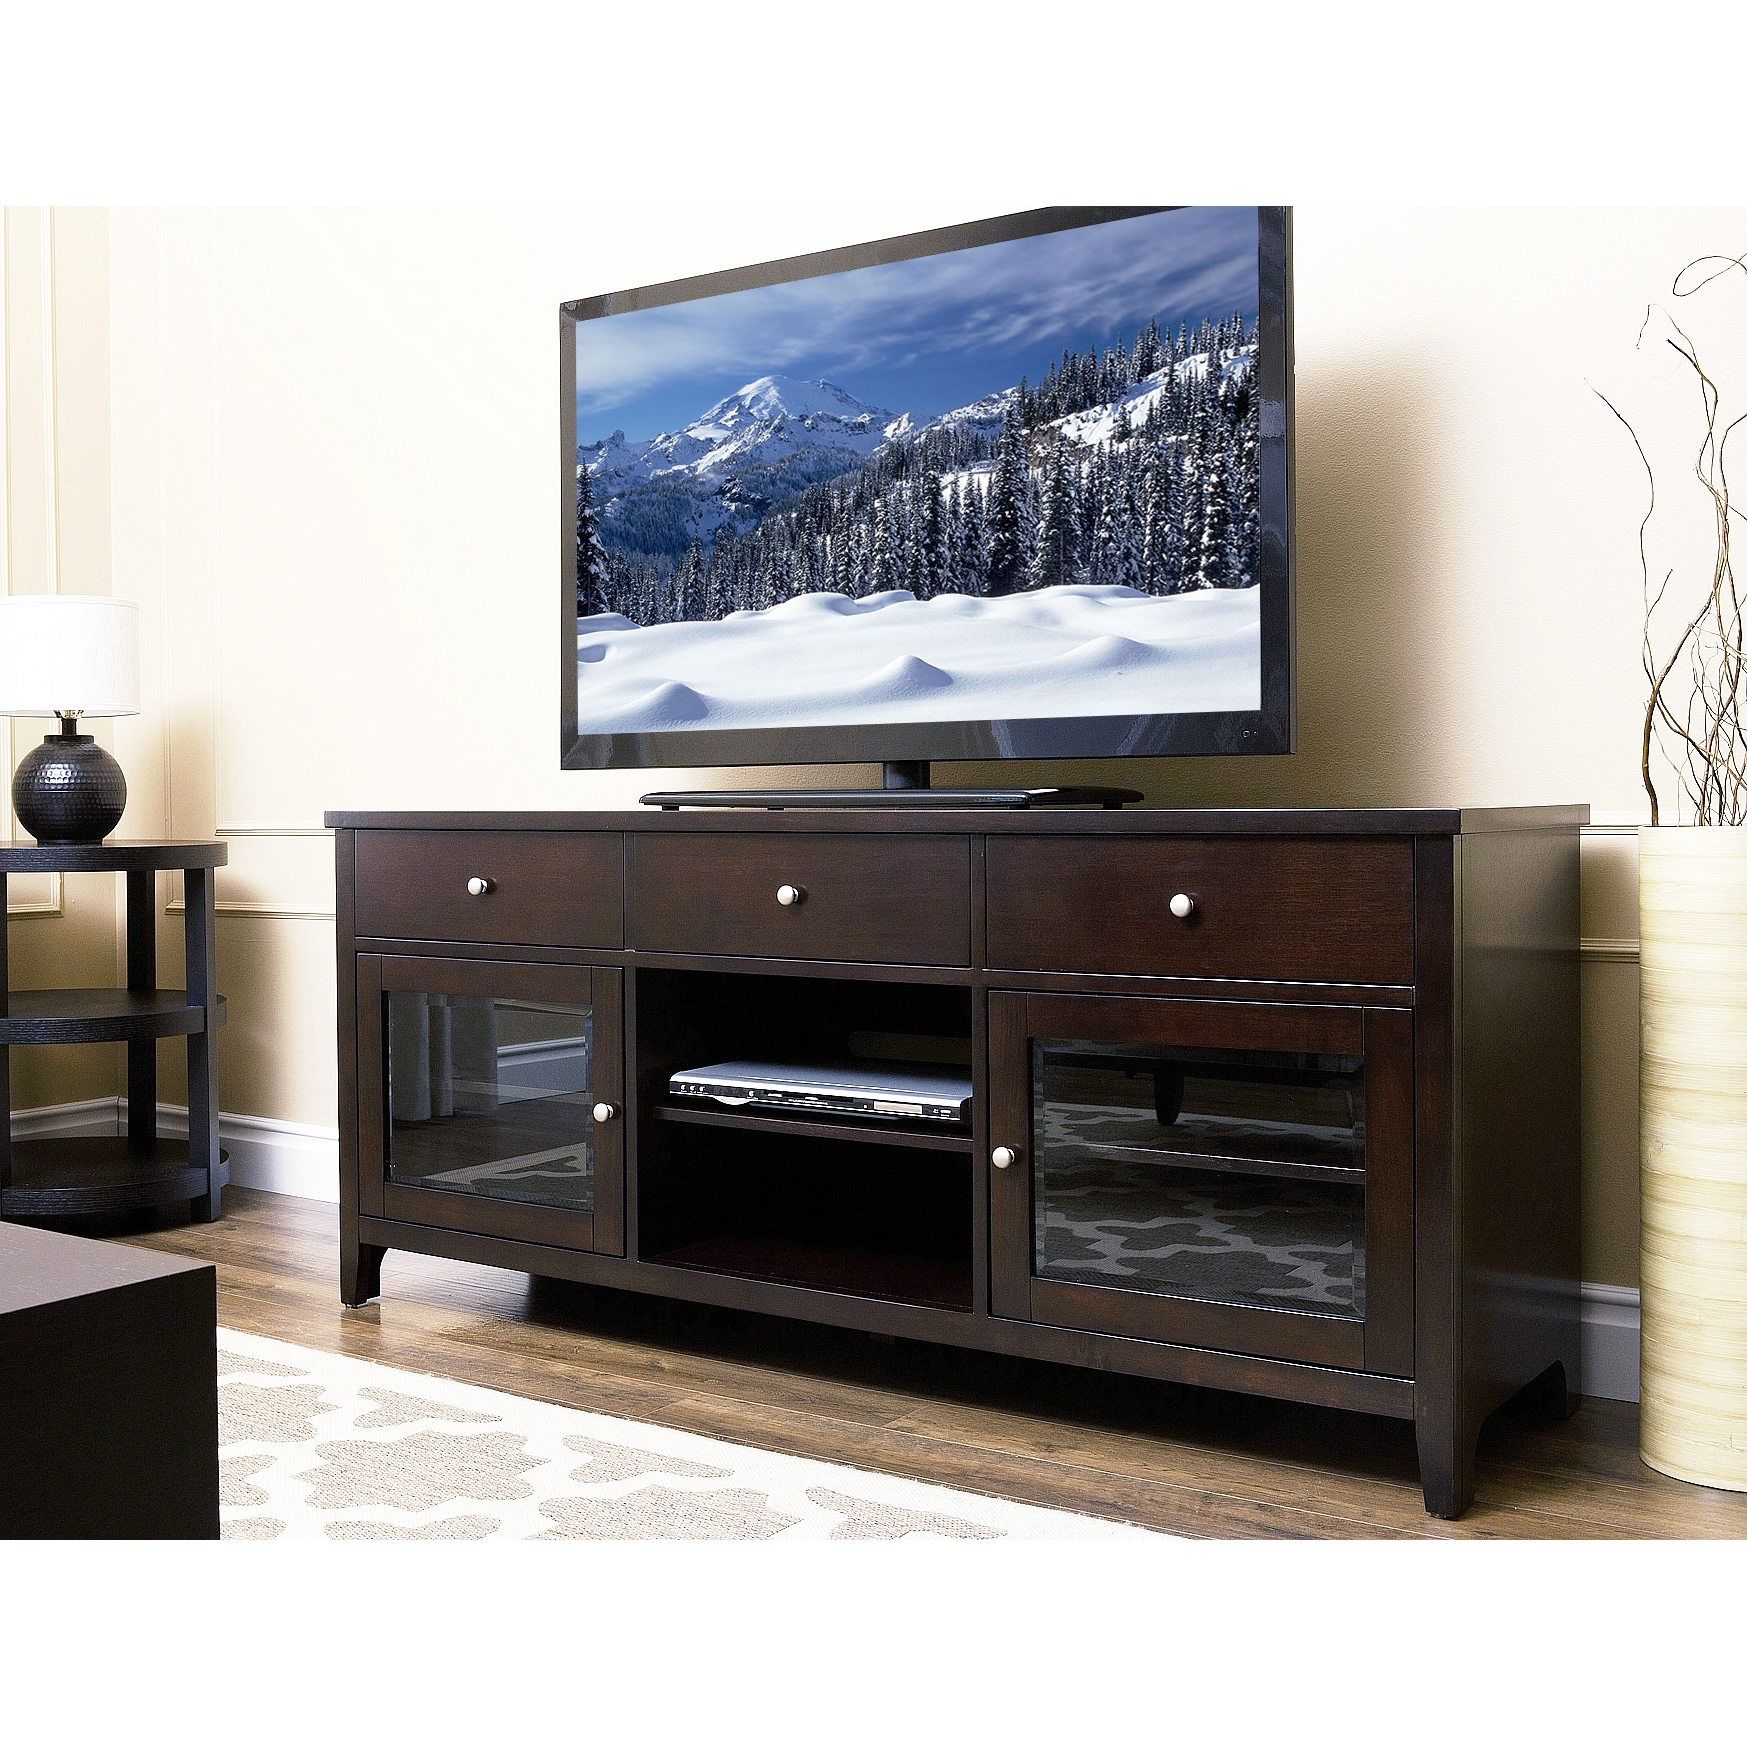 Abbyson Living Carmen 64-inch Espresso Solid Oak Wood TV Console at Sears.com